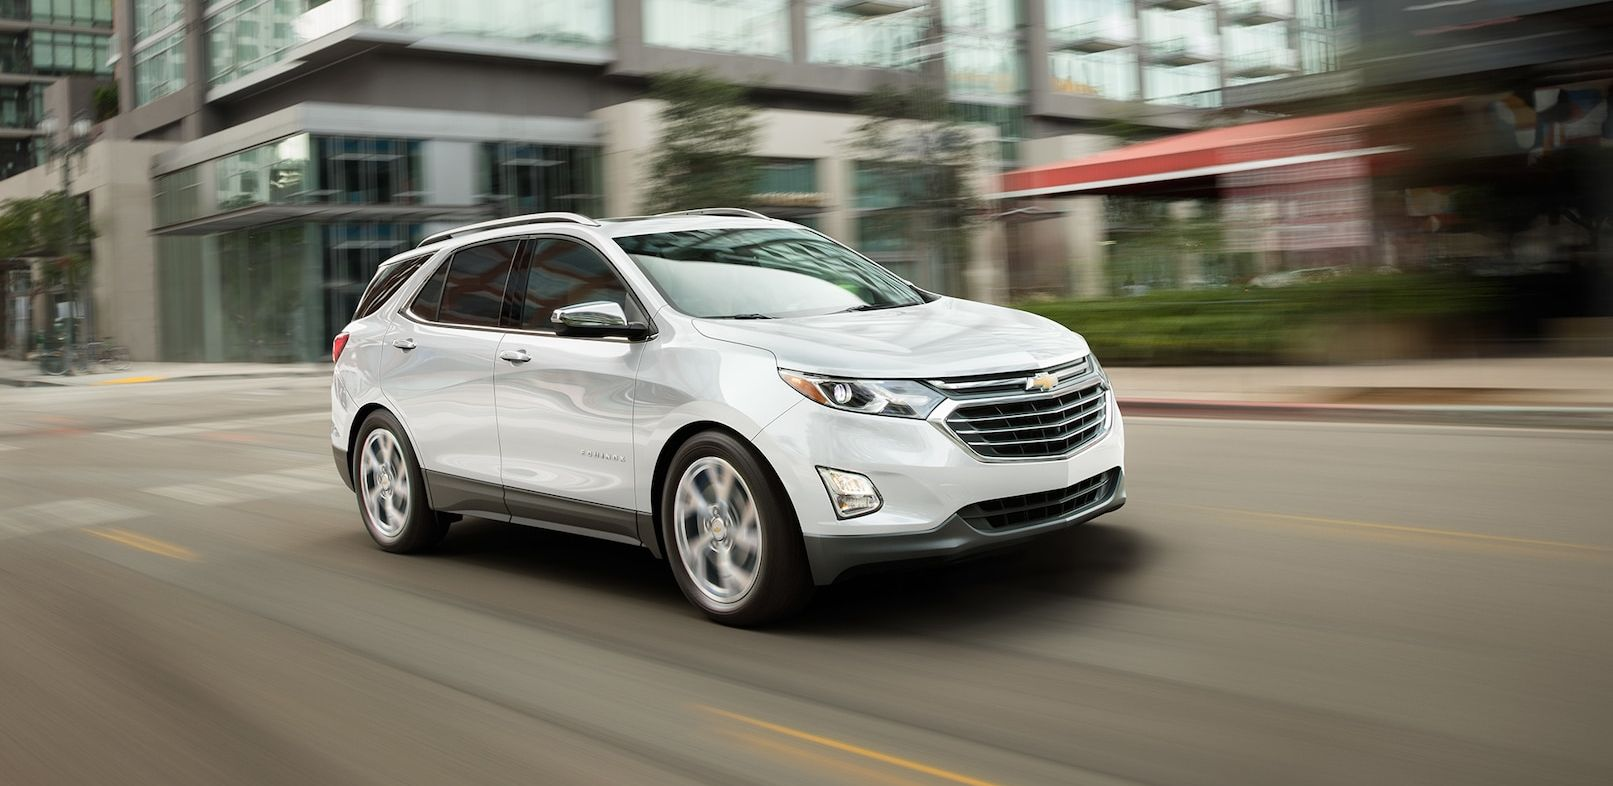 2019 Chevrolet Equinox for Sale near Escondido, CA